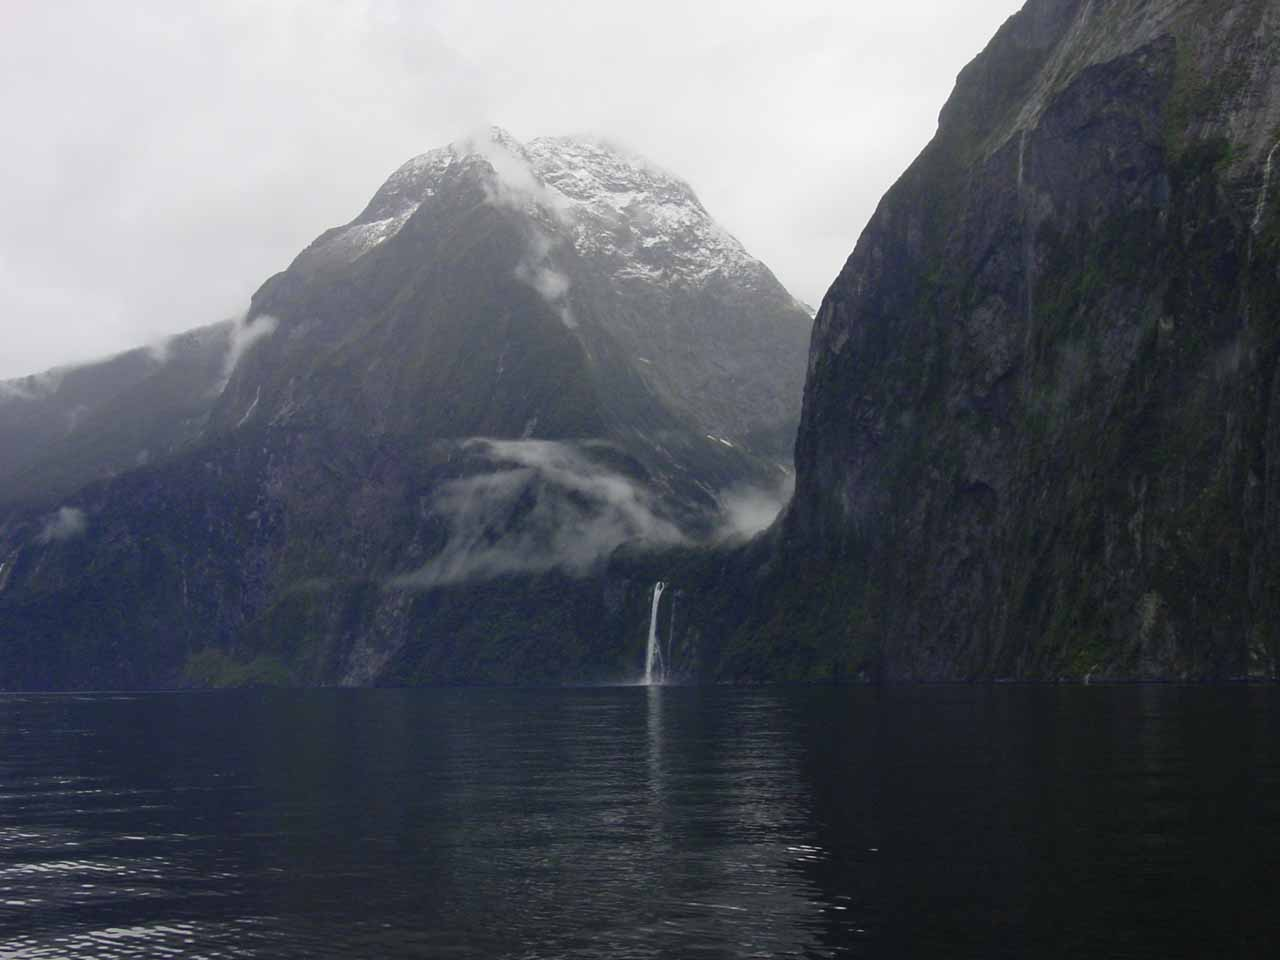 Looking across Milford Sound towards Stirling Falls